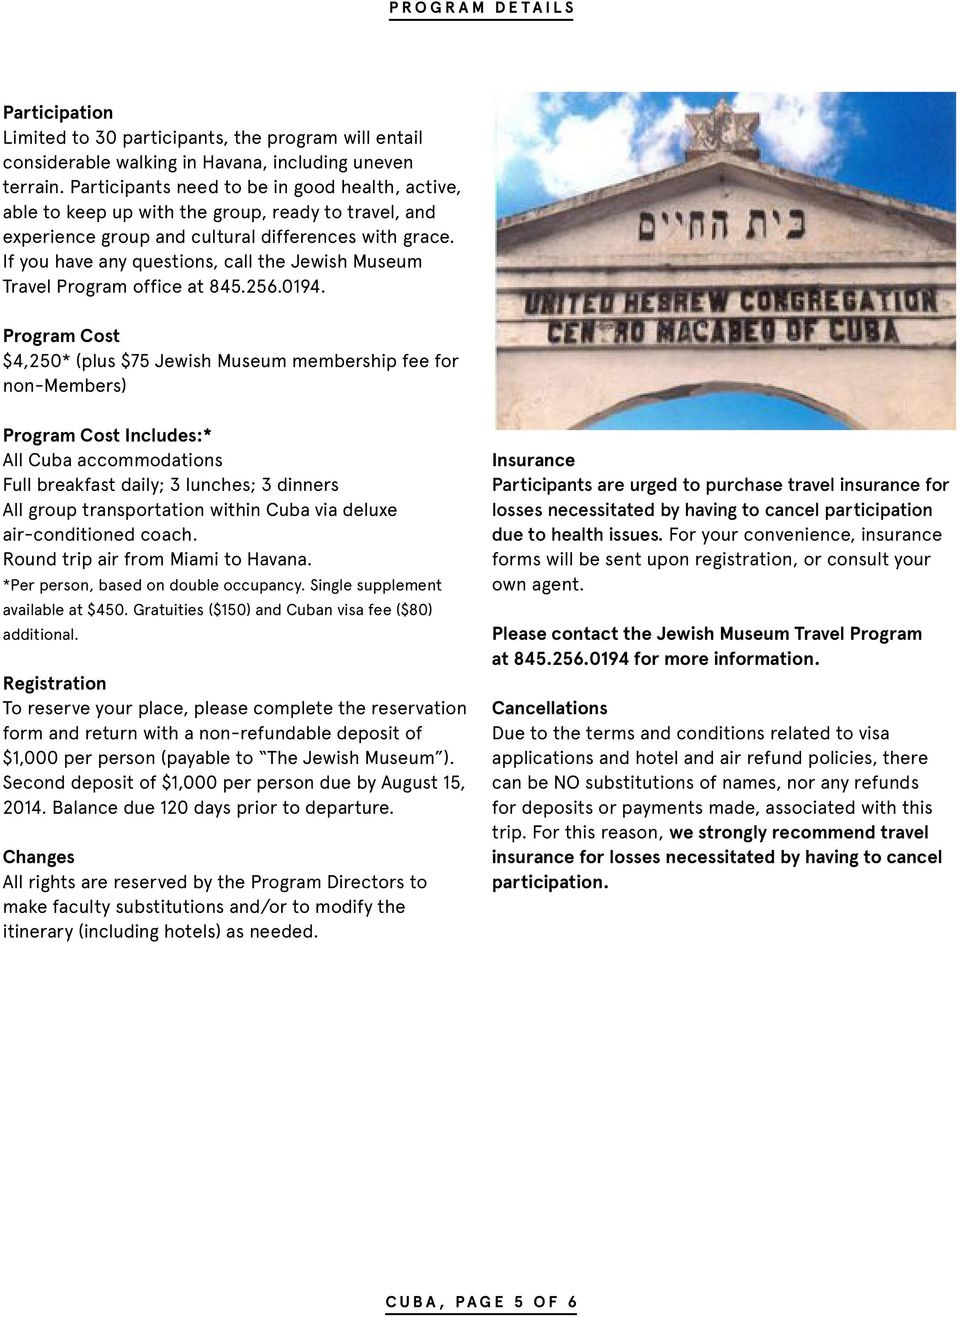 If you have any questions, call the Jewish Museum Travel Program office at 845.256.0194.